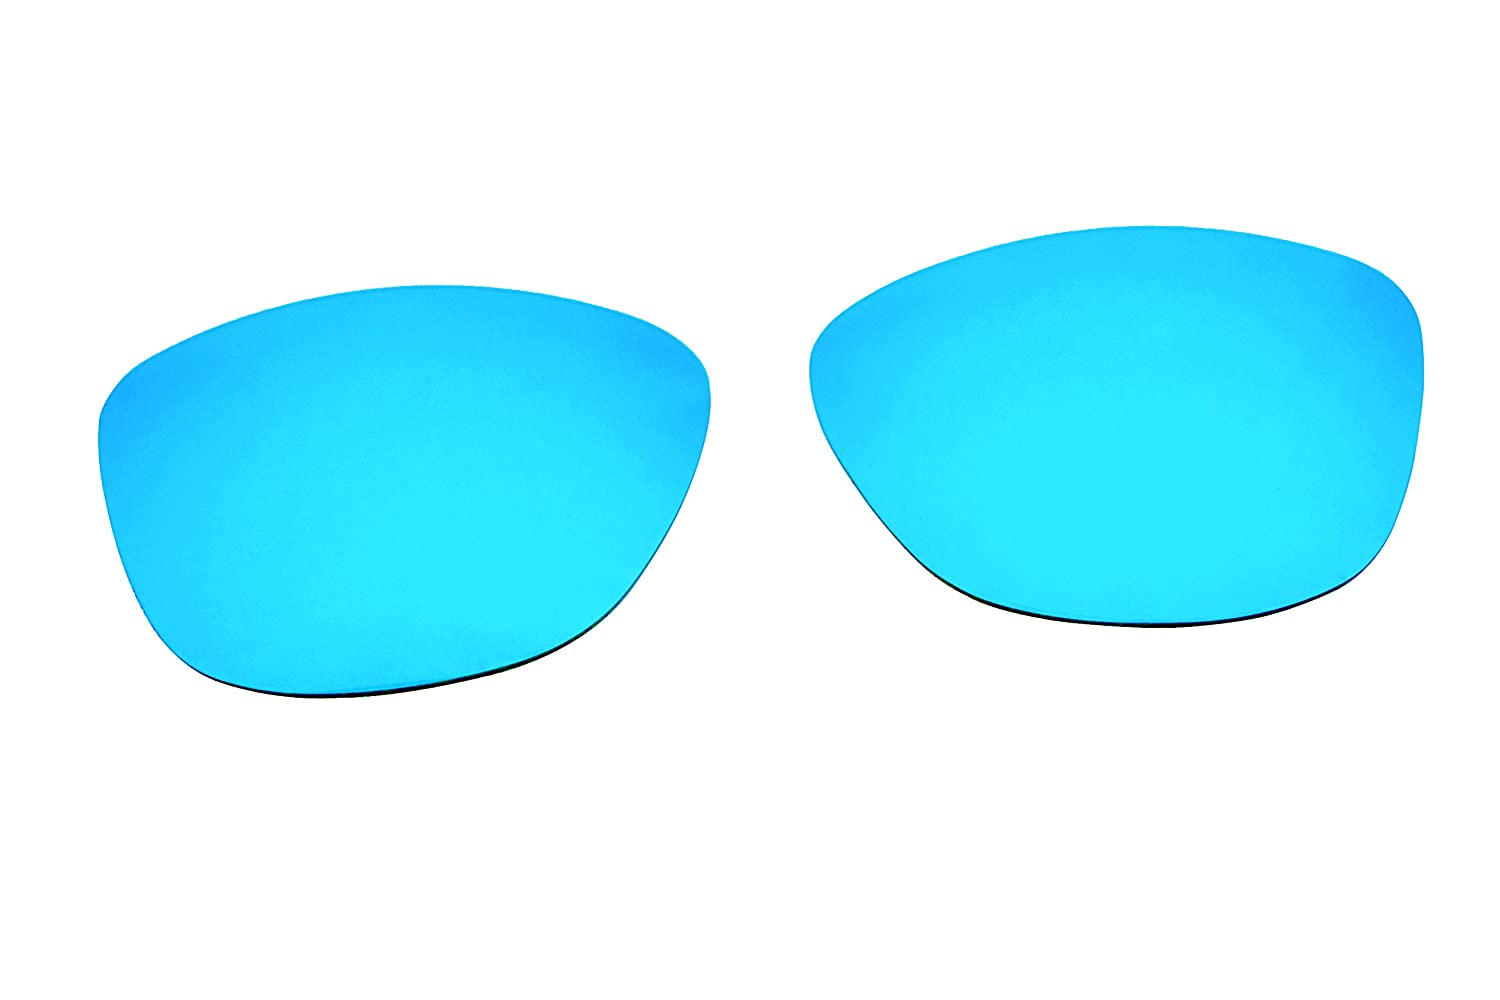 129a20ee581 Polarized Replacement Sunglasses Lenses for Oakley Frogskins with UV  Protection(Ice Blue Mirror) - - Amazon.com